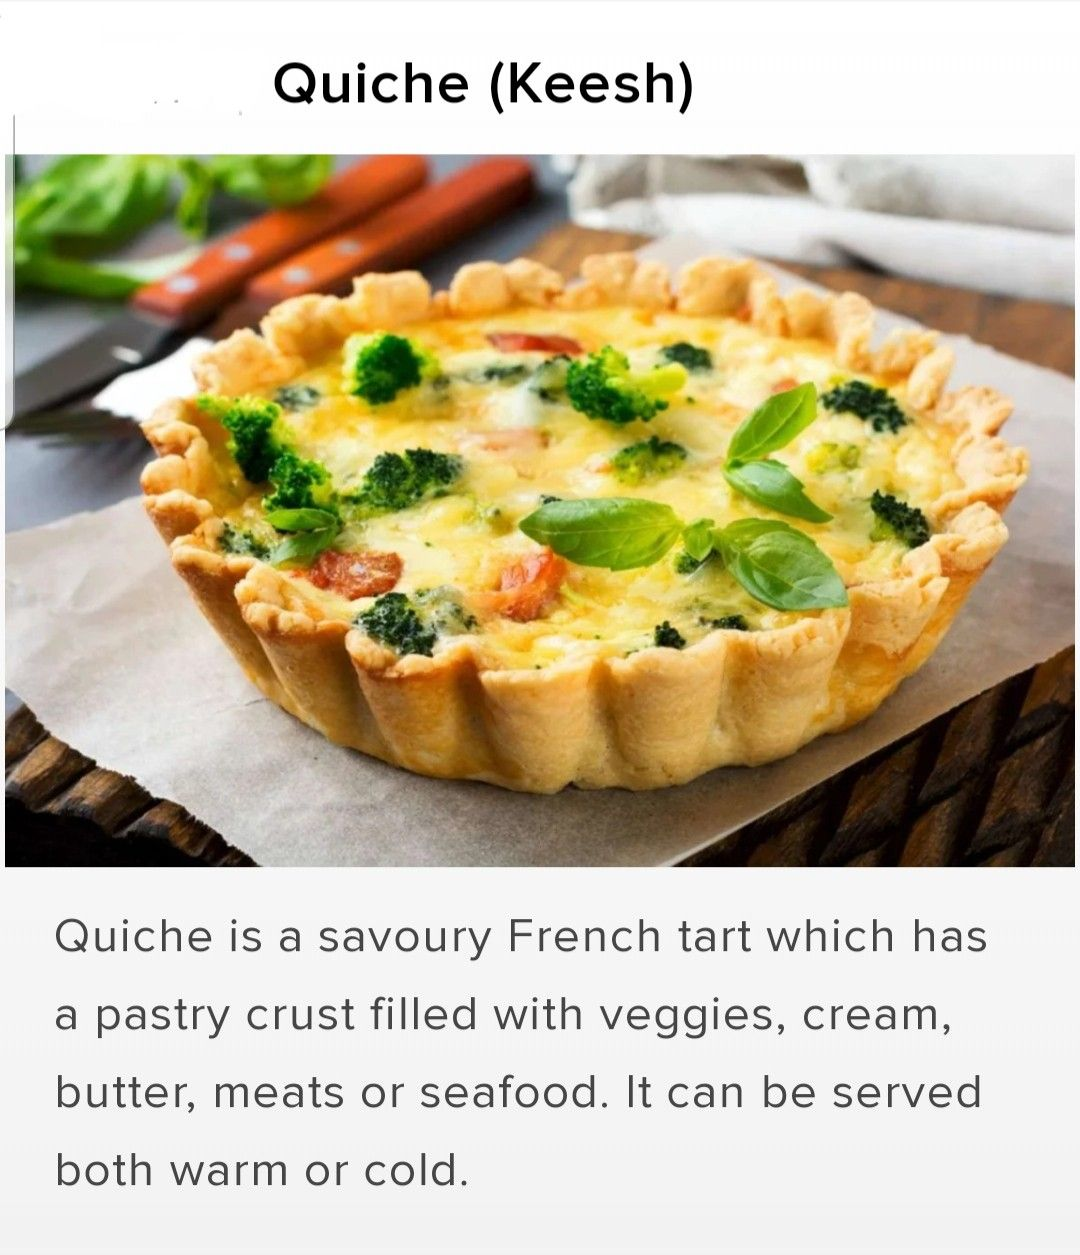 Pin by Navin Sahay on Vocab - Pronunciation (food) in 2020 French tart, Food, Pastry crust